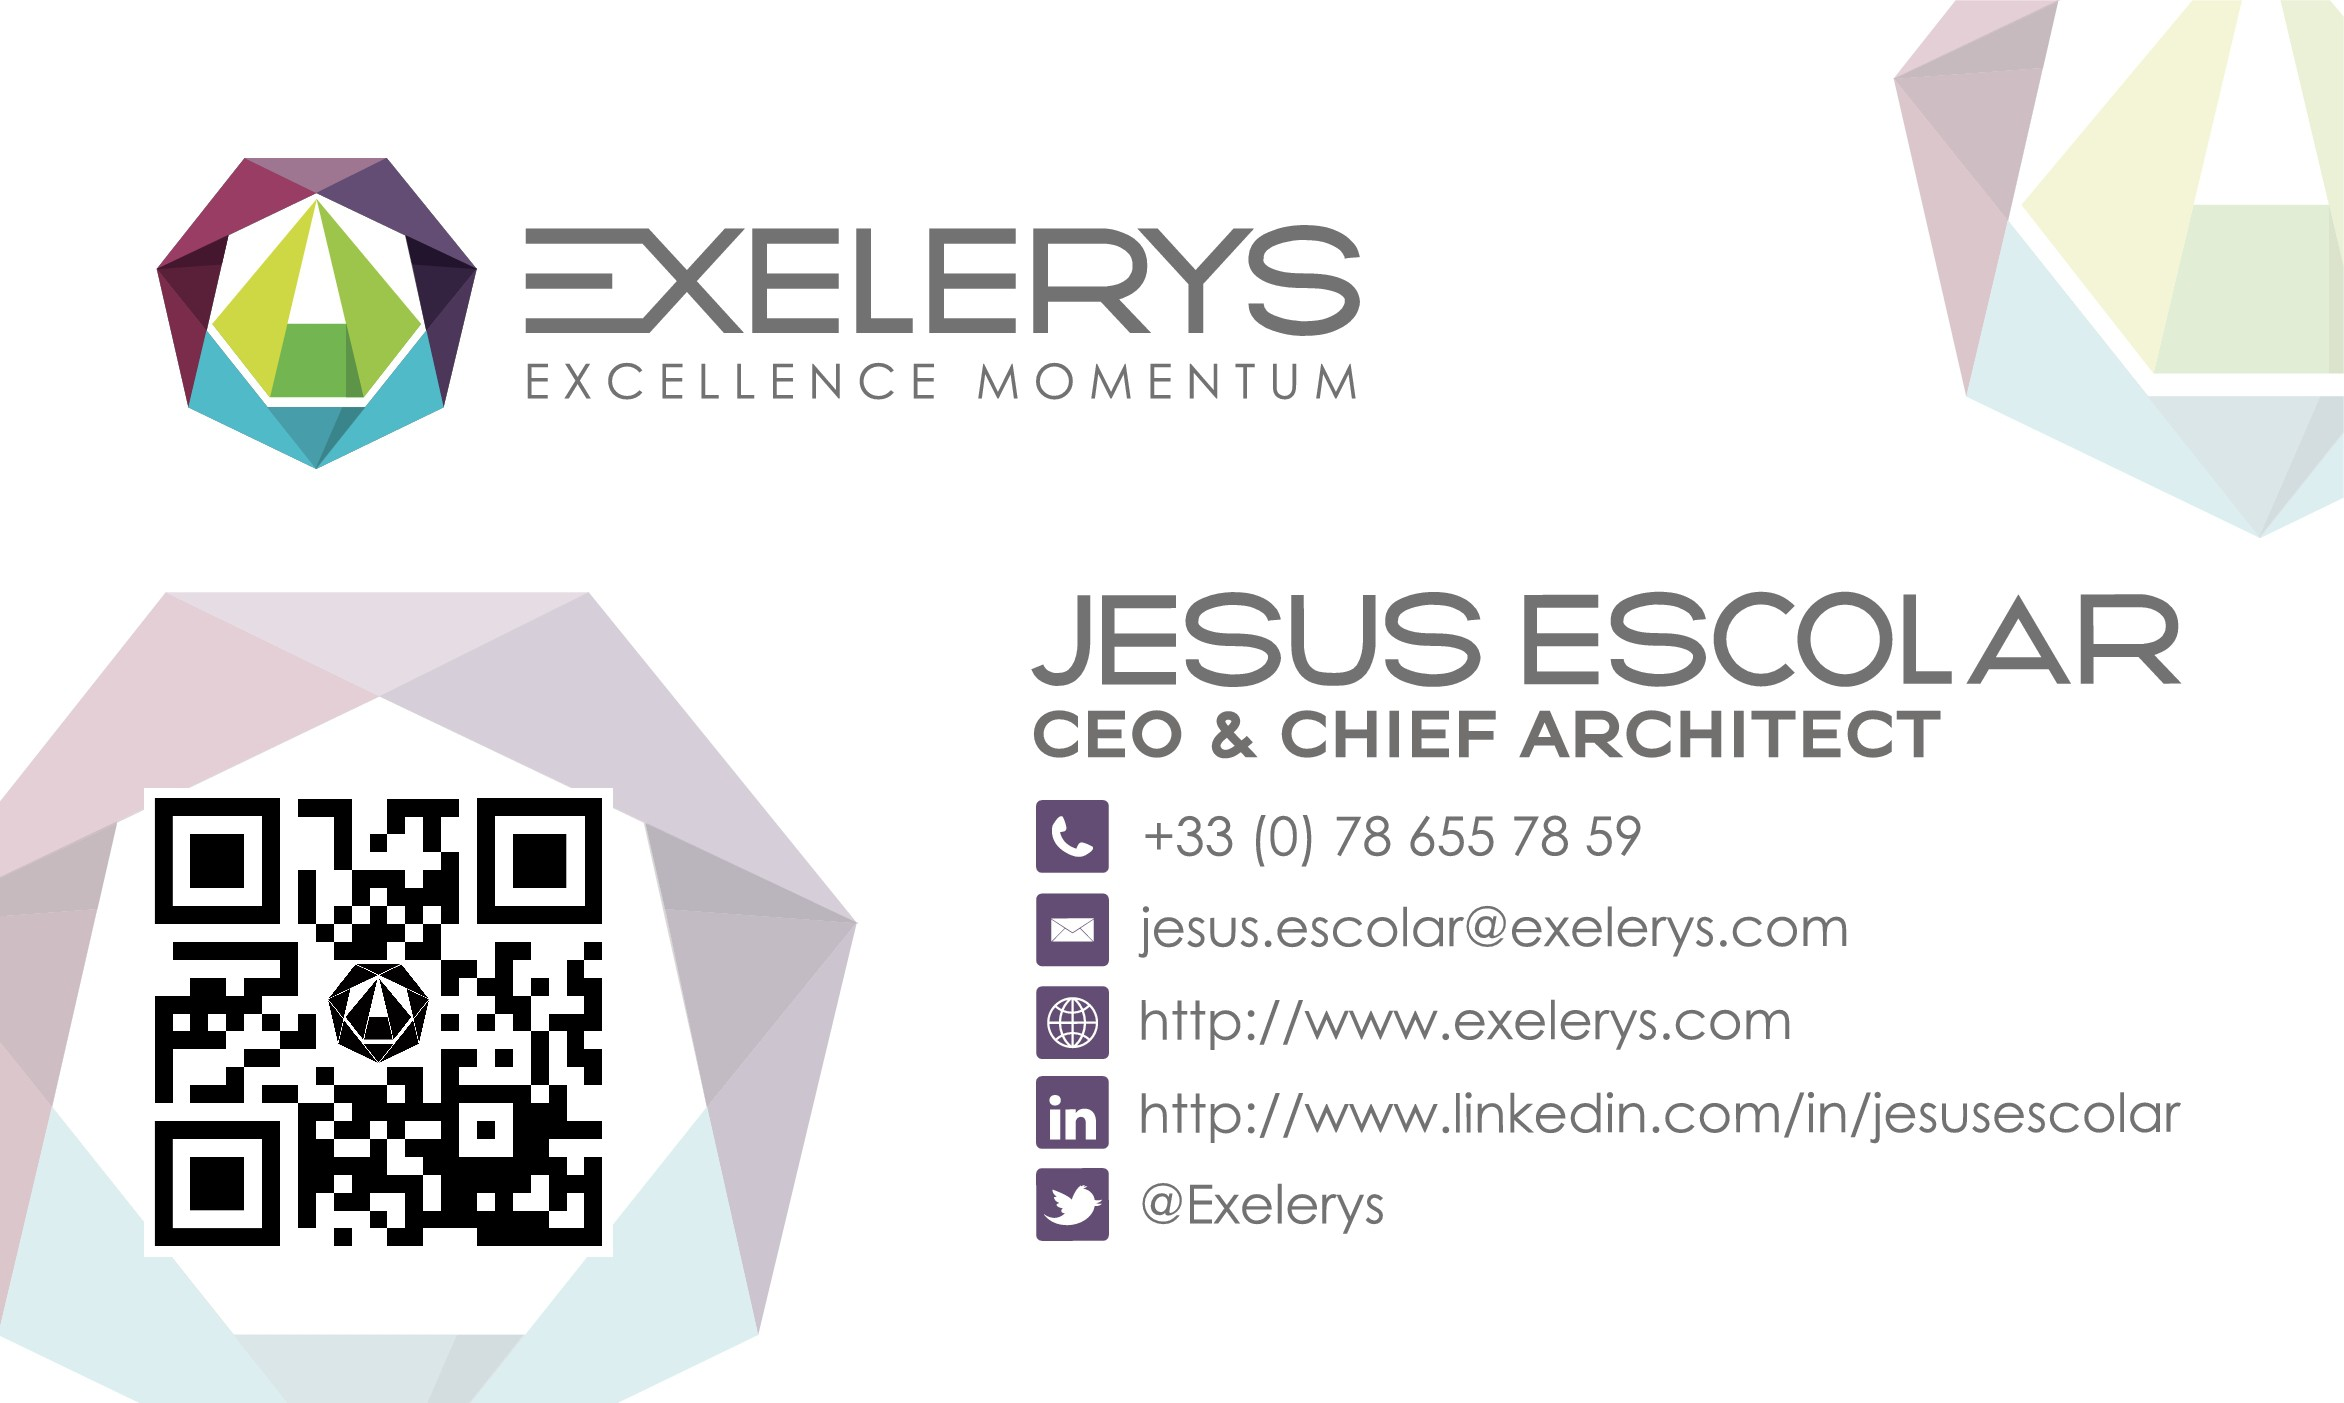 Light changes to the business cards